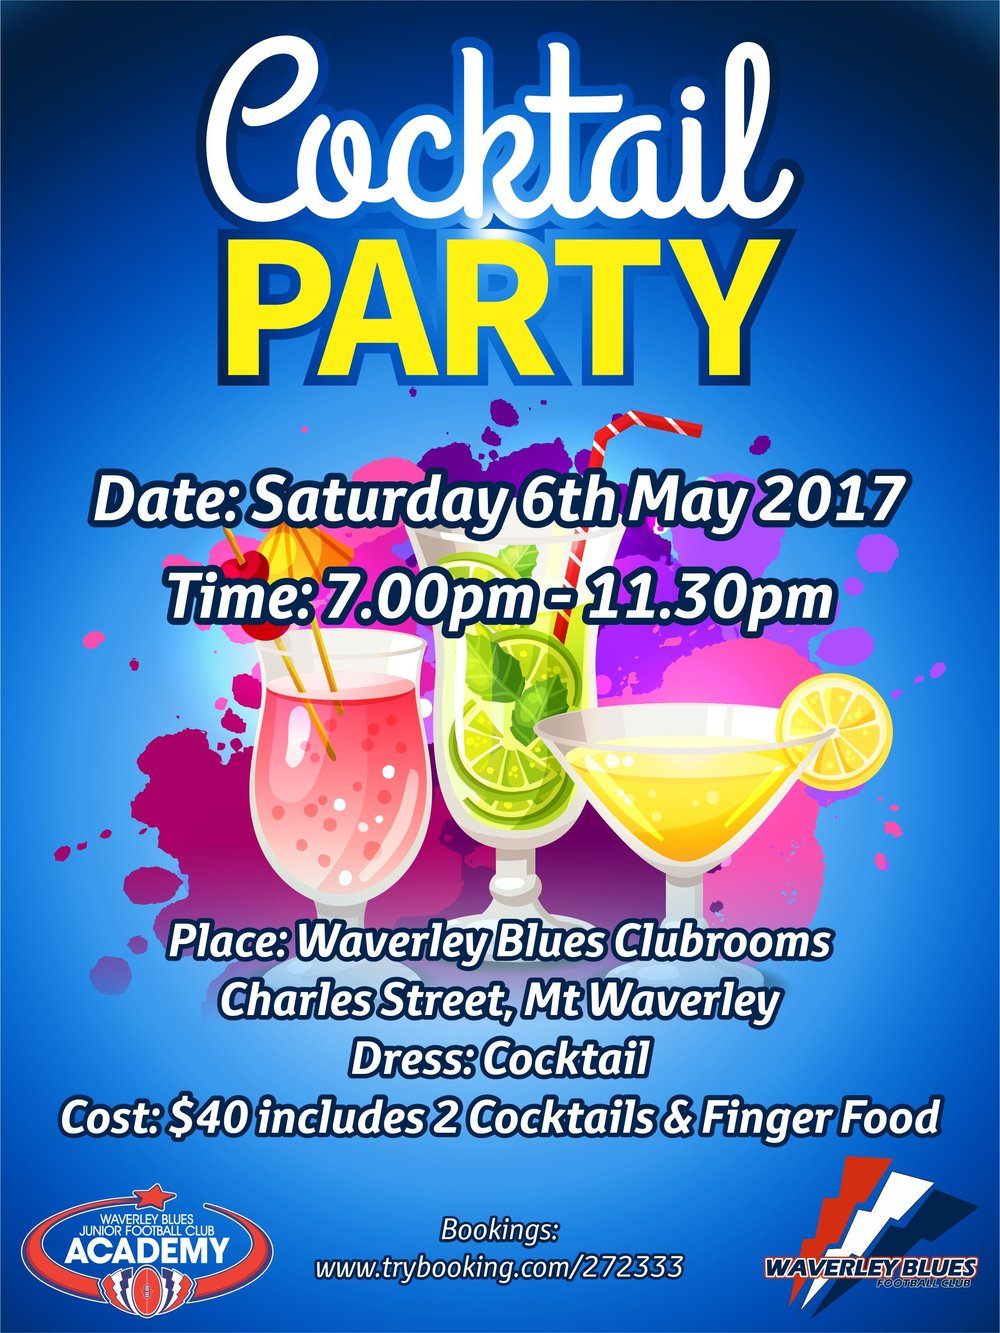 Waverley Blues are having a Cocktail Party on Saturday 6th May 2017 from 7:00pm to 11:30pm at the Mt Waverley Clubrooms.  As this is the first parent function for the 2017 season we would love to see you all there and please feel free to invite friends.   The cost includes two cocktails, finger food and a DJ so bring your dancing shoes.  To book tickets please click on the link below:- https://www.trybooking.com/272333 Please see the attached Cocktail Party Invitation. We look forward to seeing you all there.